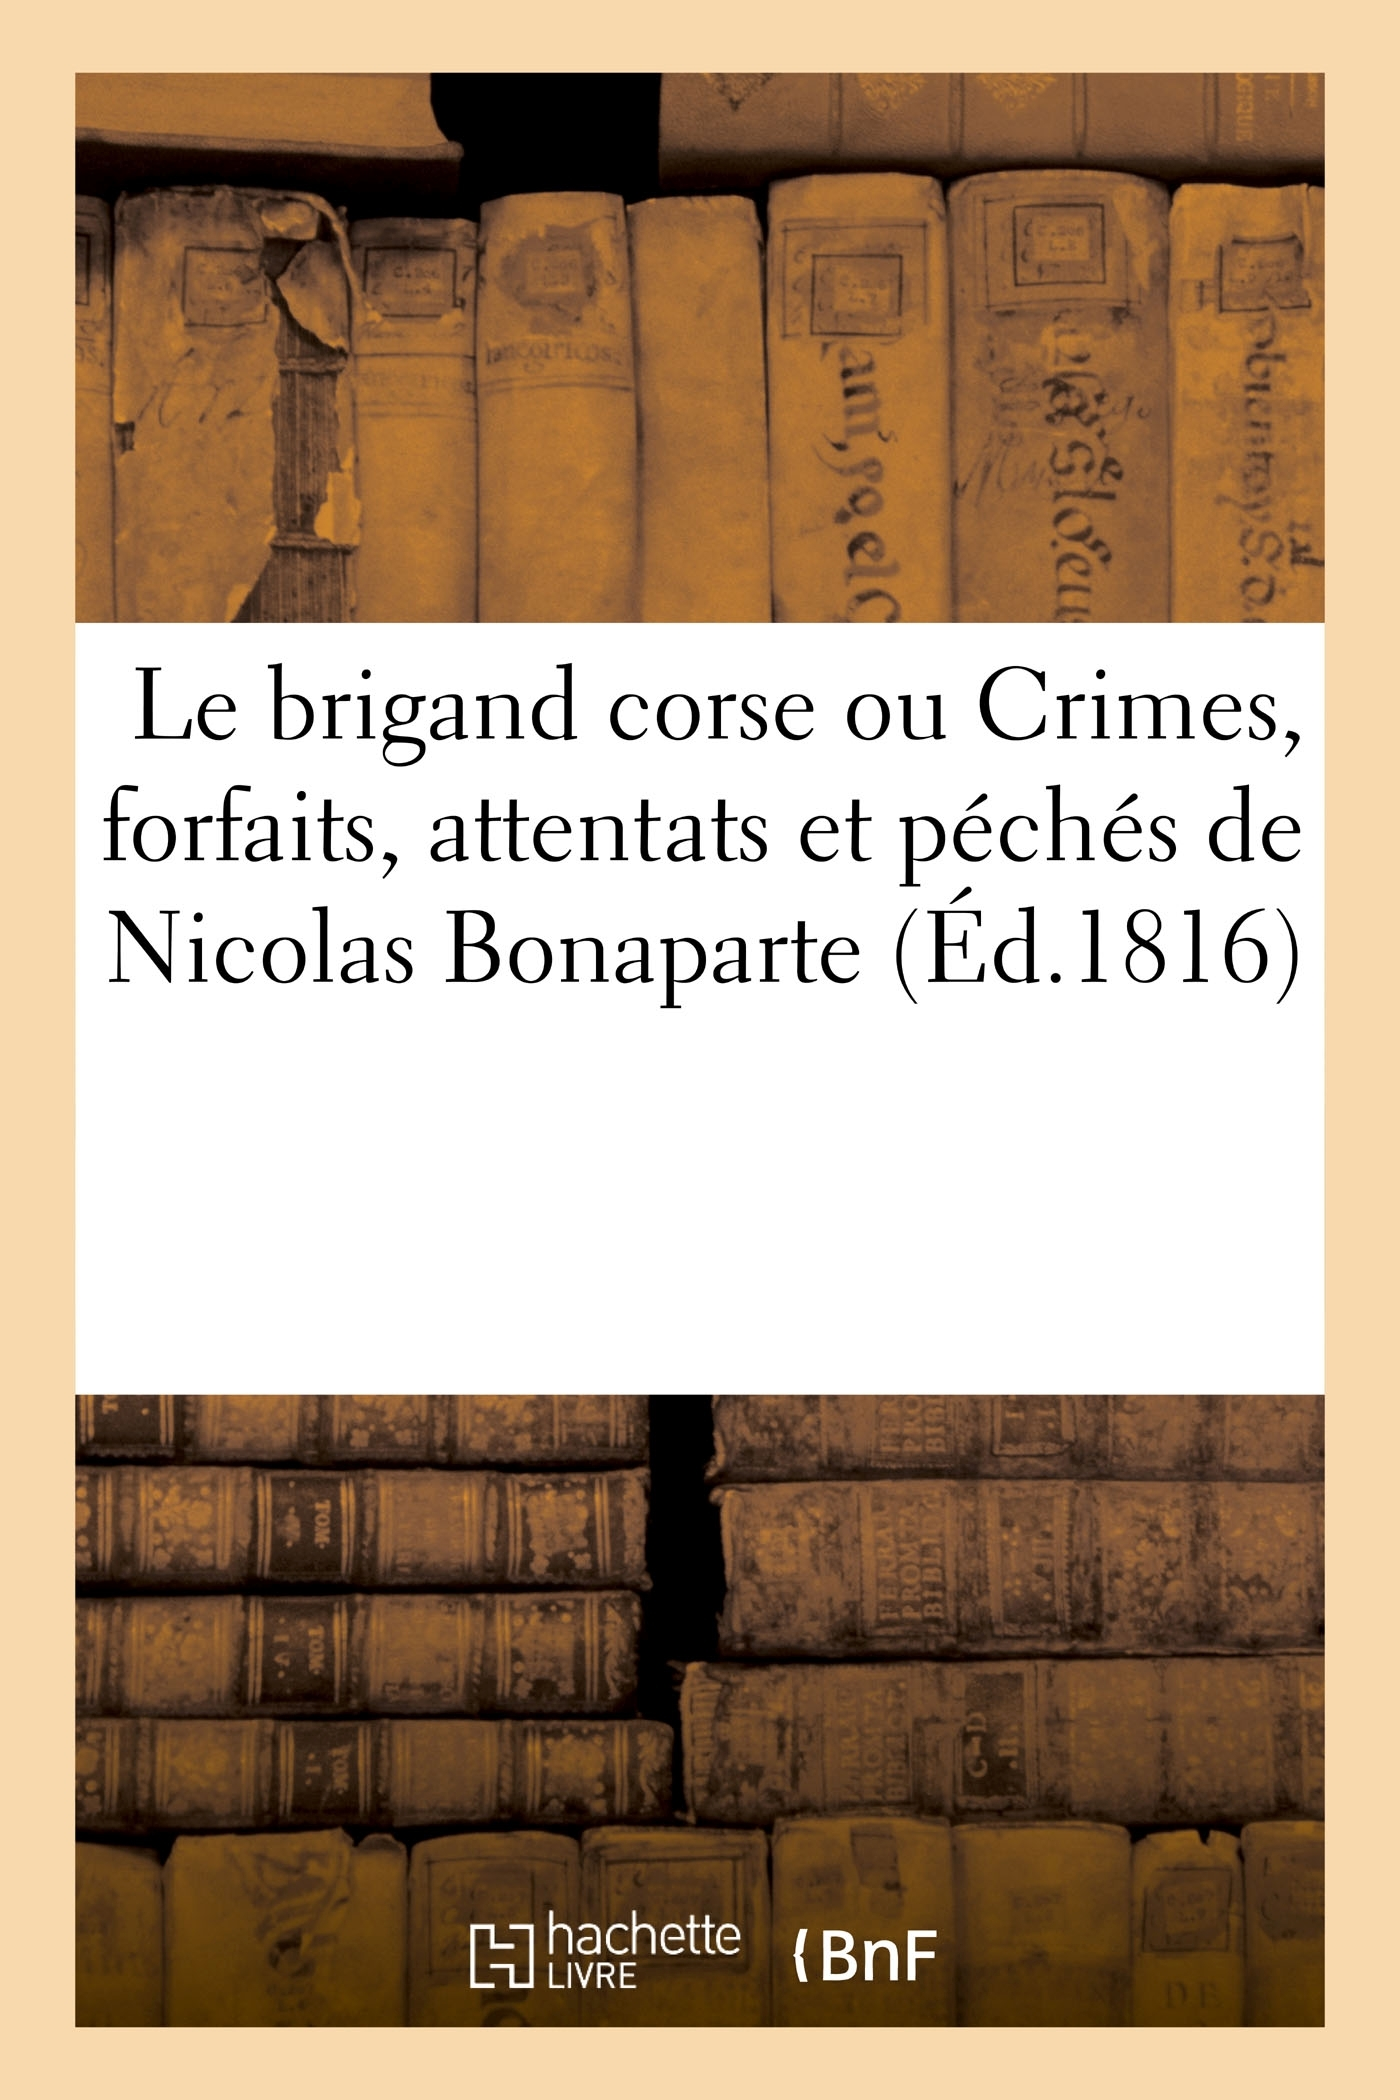 LE BRIGAND CORSE OU CRIMES, FORFAITS, ATTENTATS ET PECHES DE NICOLAS BONAPARTE